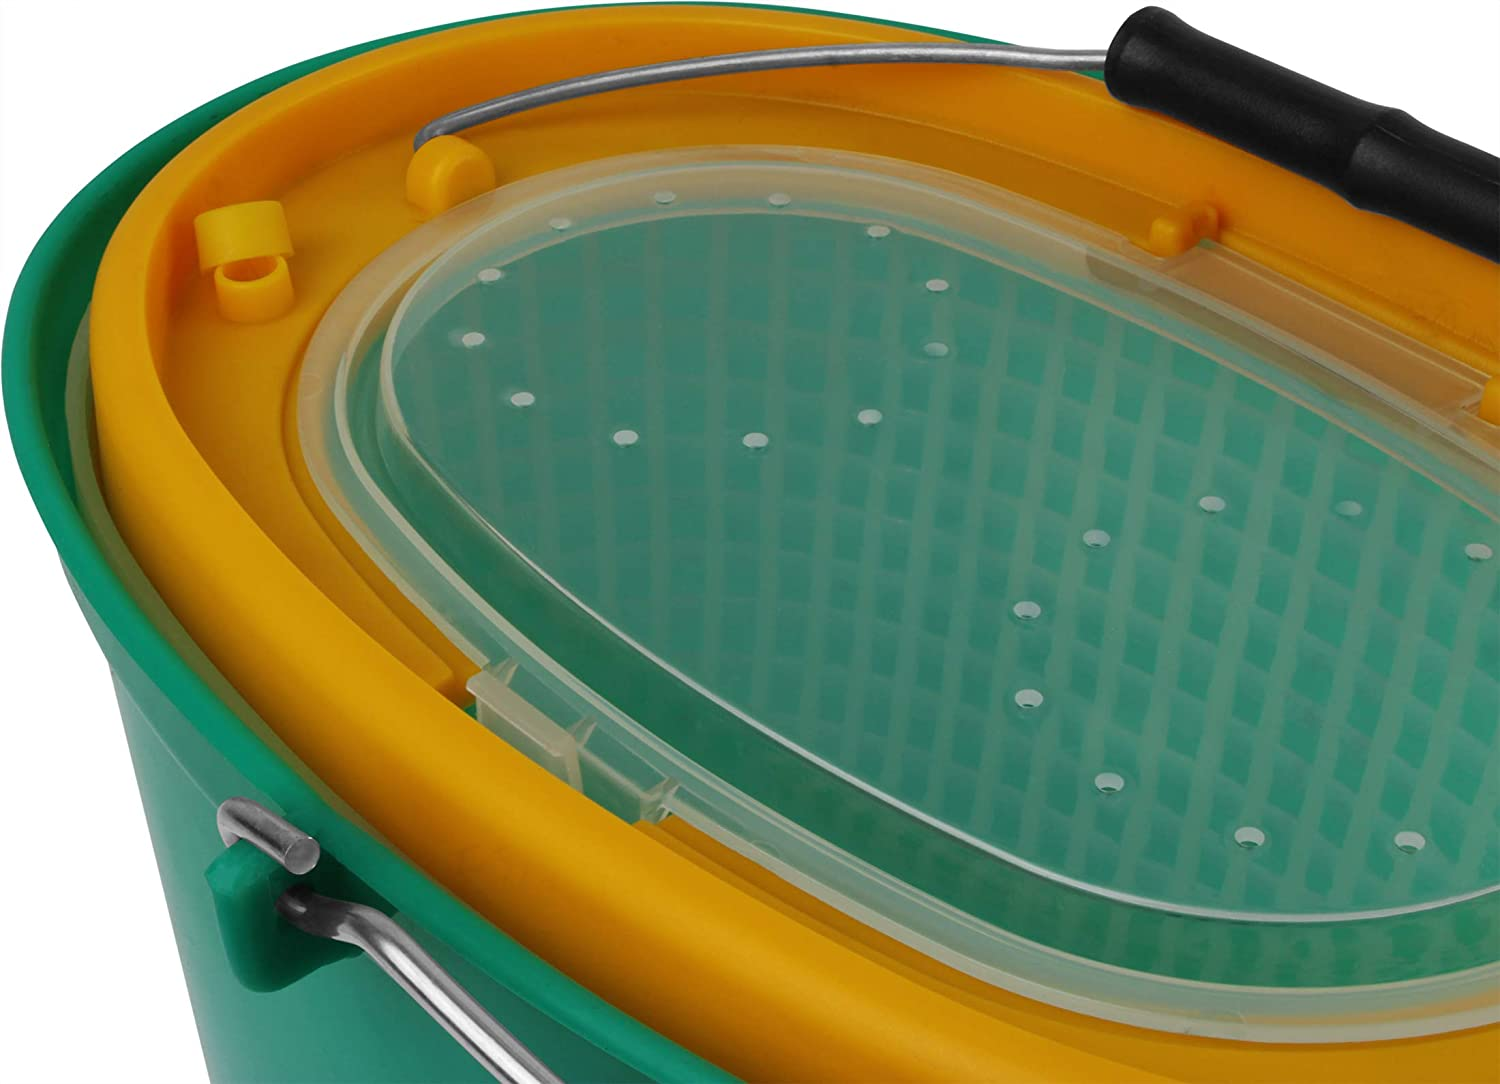 Storfisk fishing /& more Bait Fish Bucket with Hinged Lid and Strainer Insert